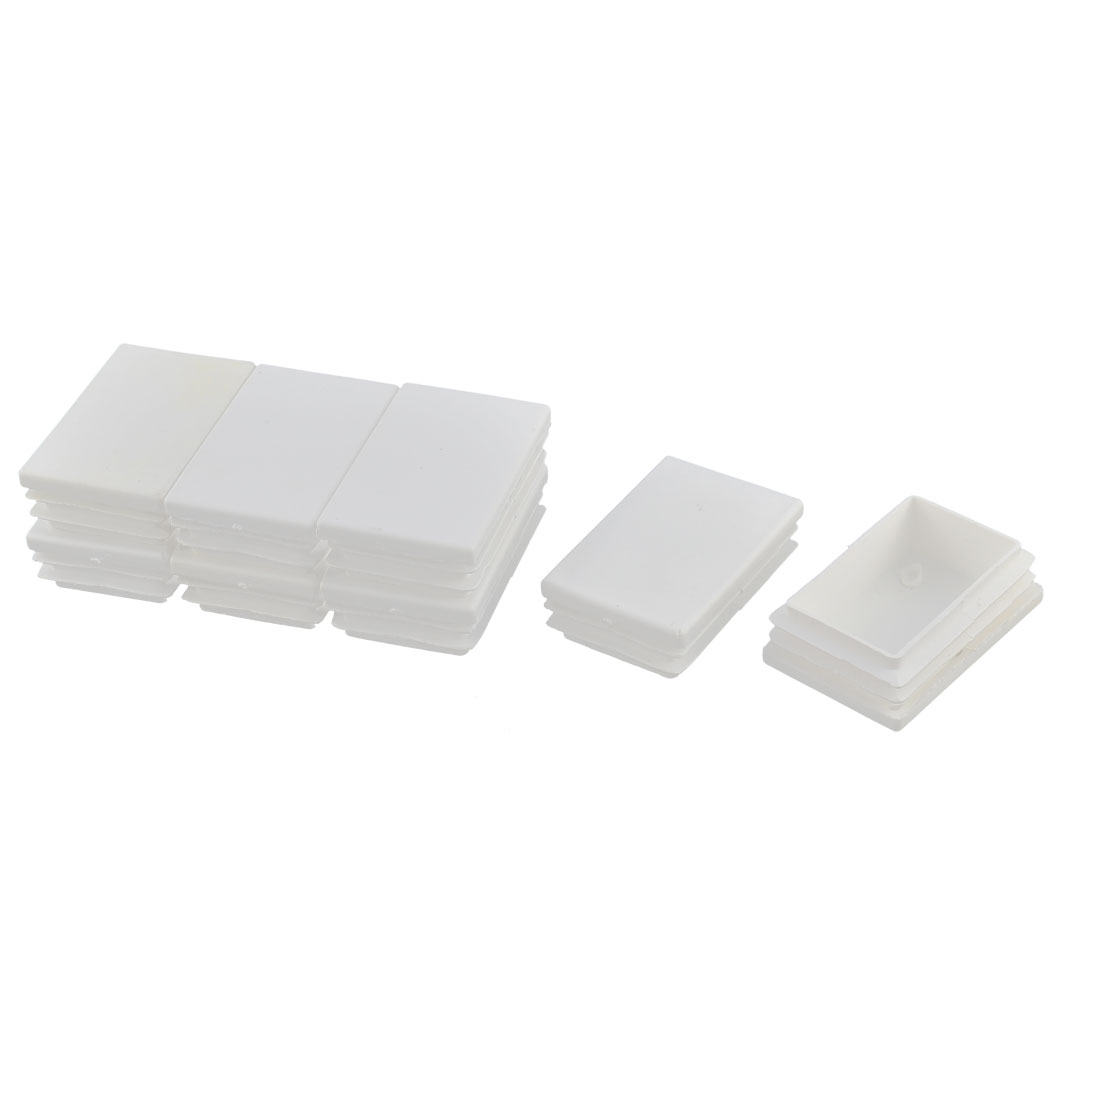 Furniture Legs Feet Plastic Rectangle Tube Inserts Bungs End Caps White 8pcs